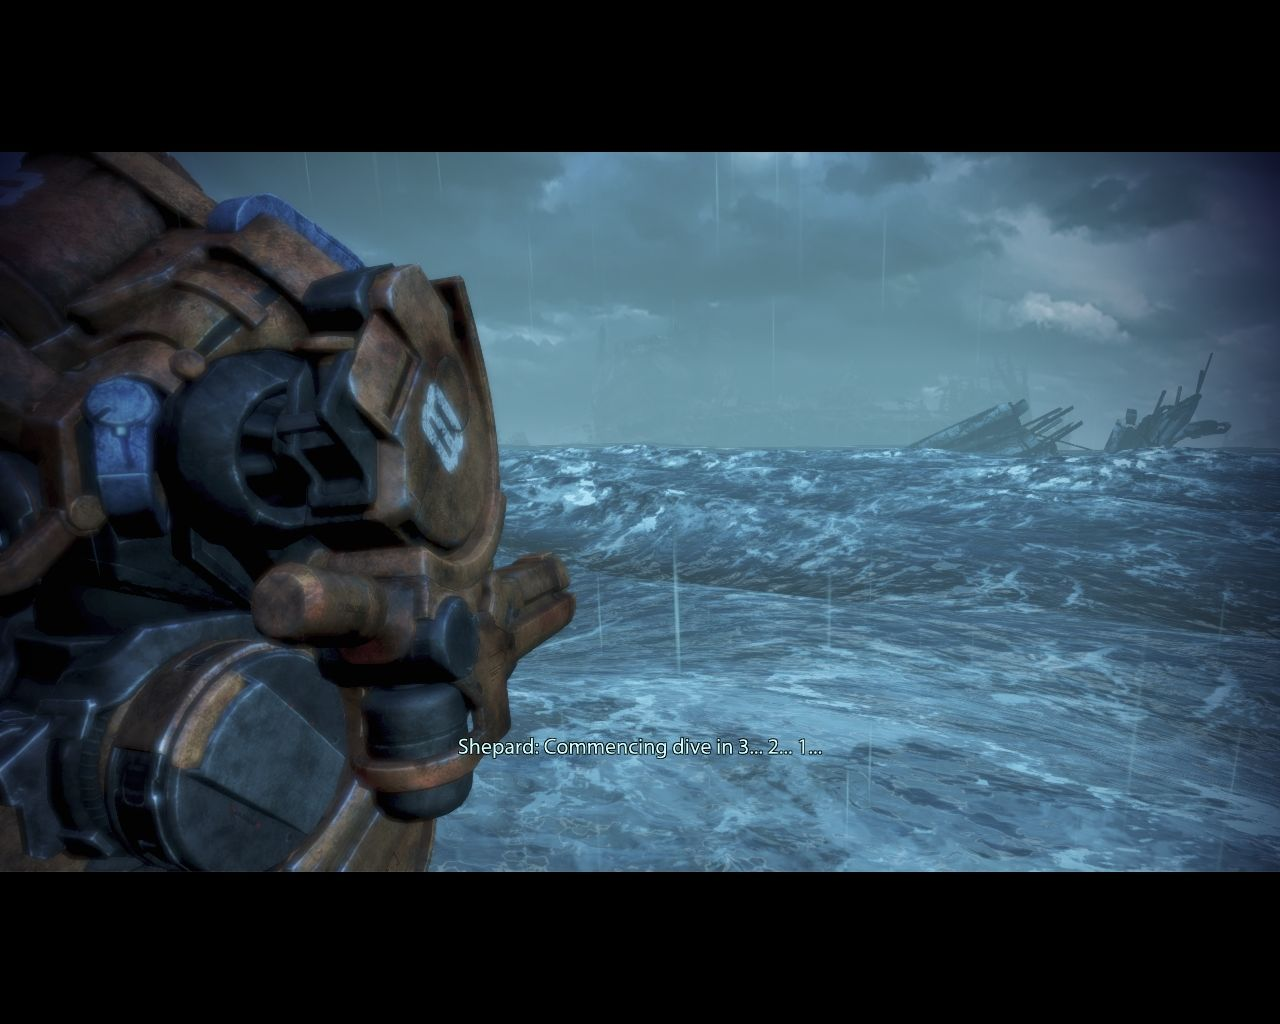 Mass Effect 3: Leviathan Windows Shepard, inside the Mech, begins his plunge into the icy water.